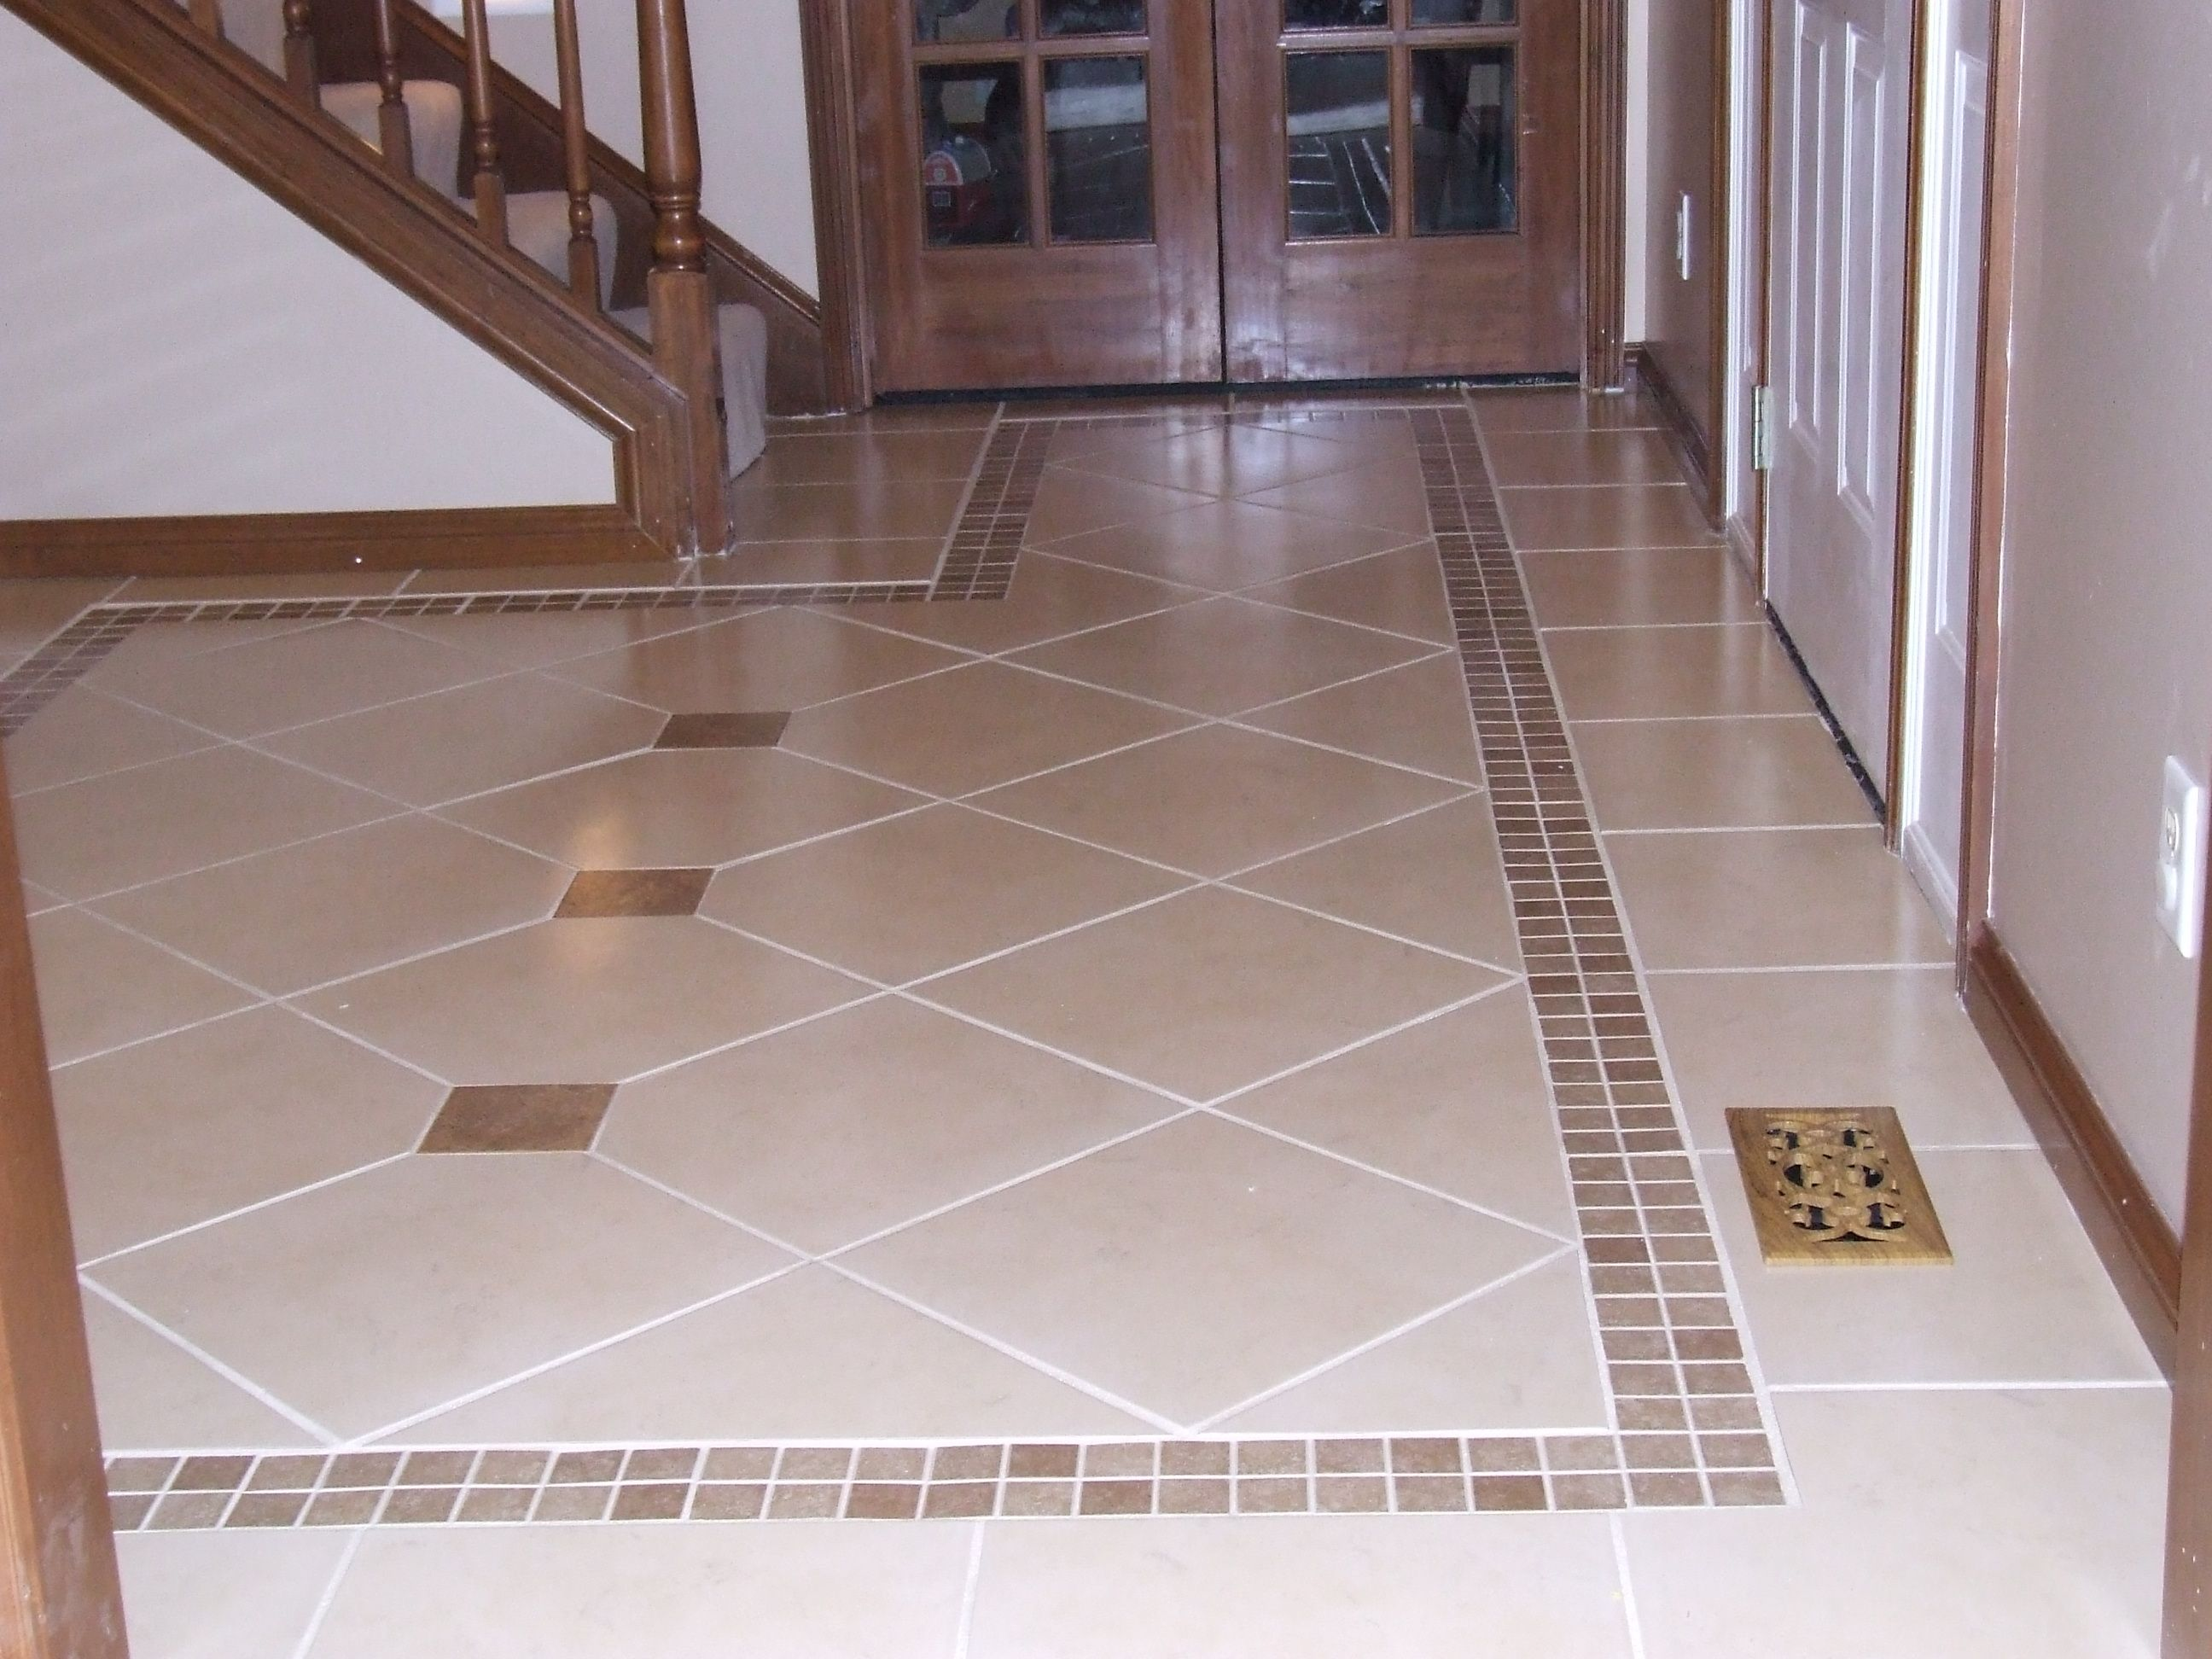 images of tile patterns ceramic tile designs for foyer - Foyer Tile Design Ideas